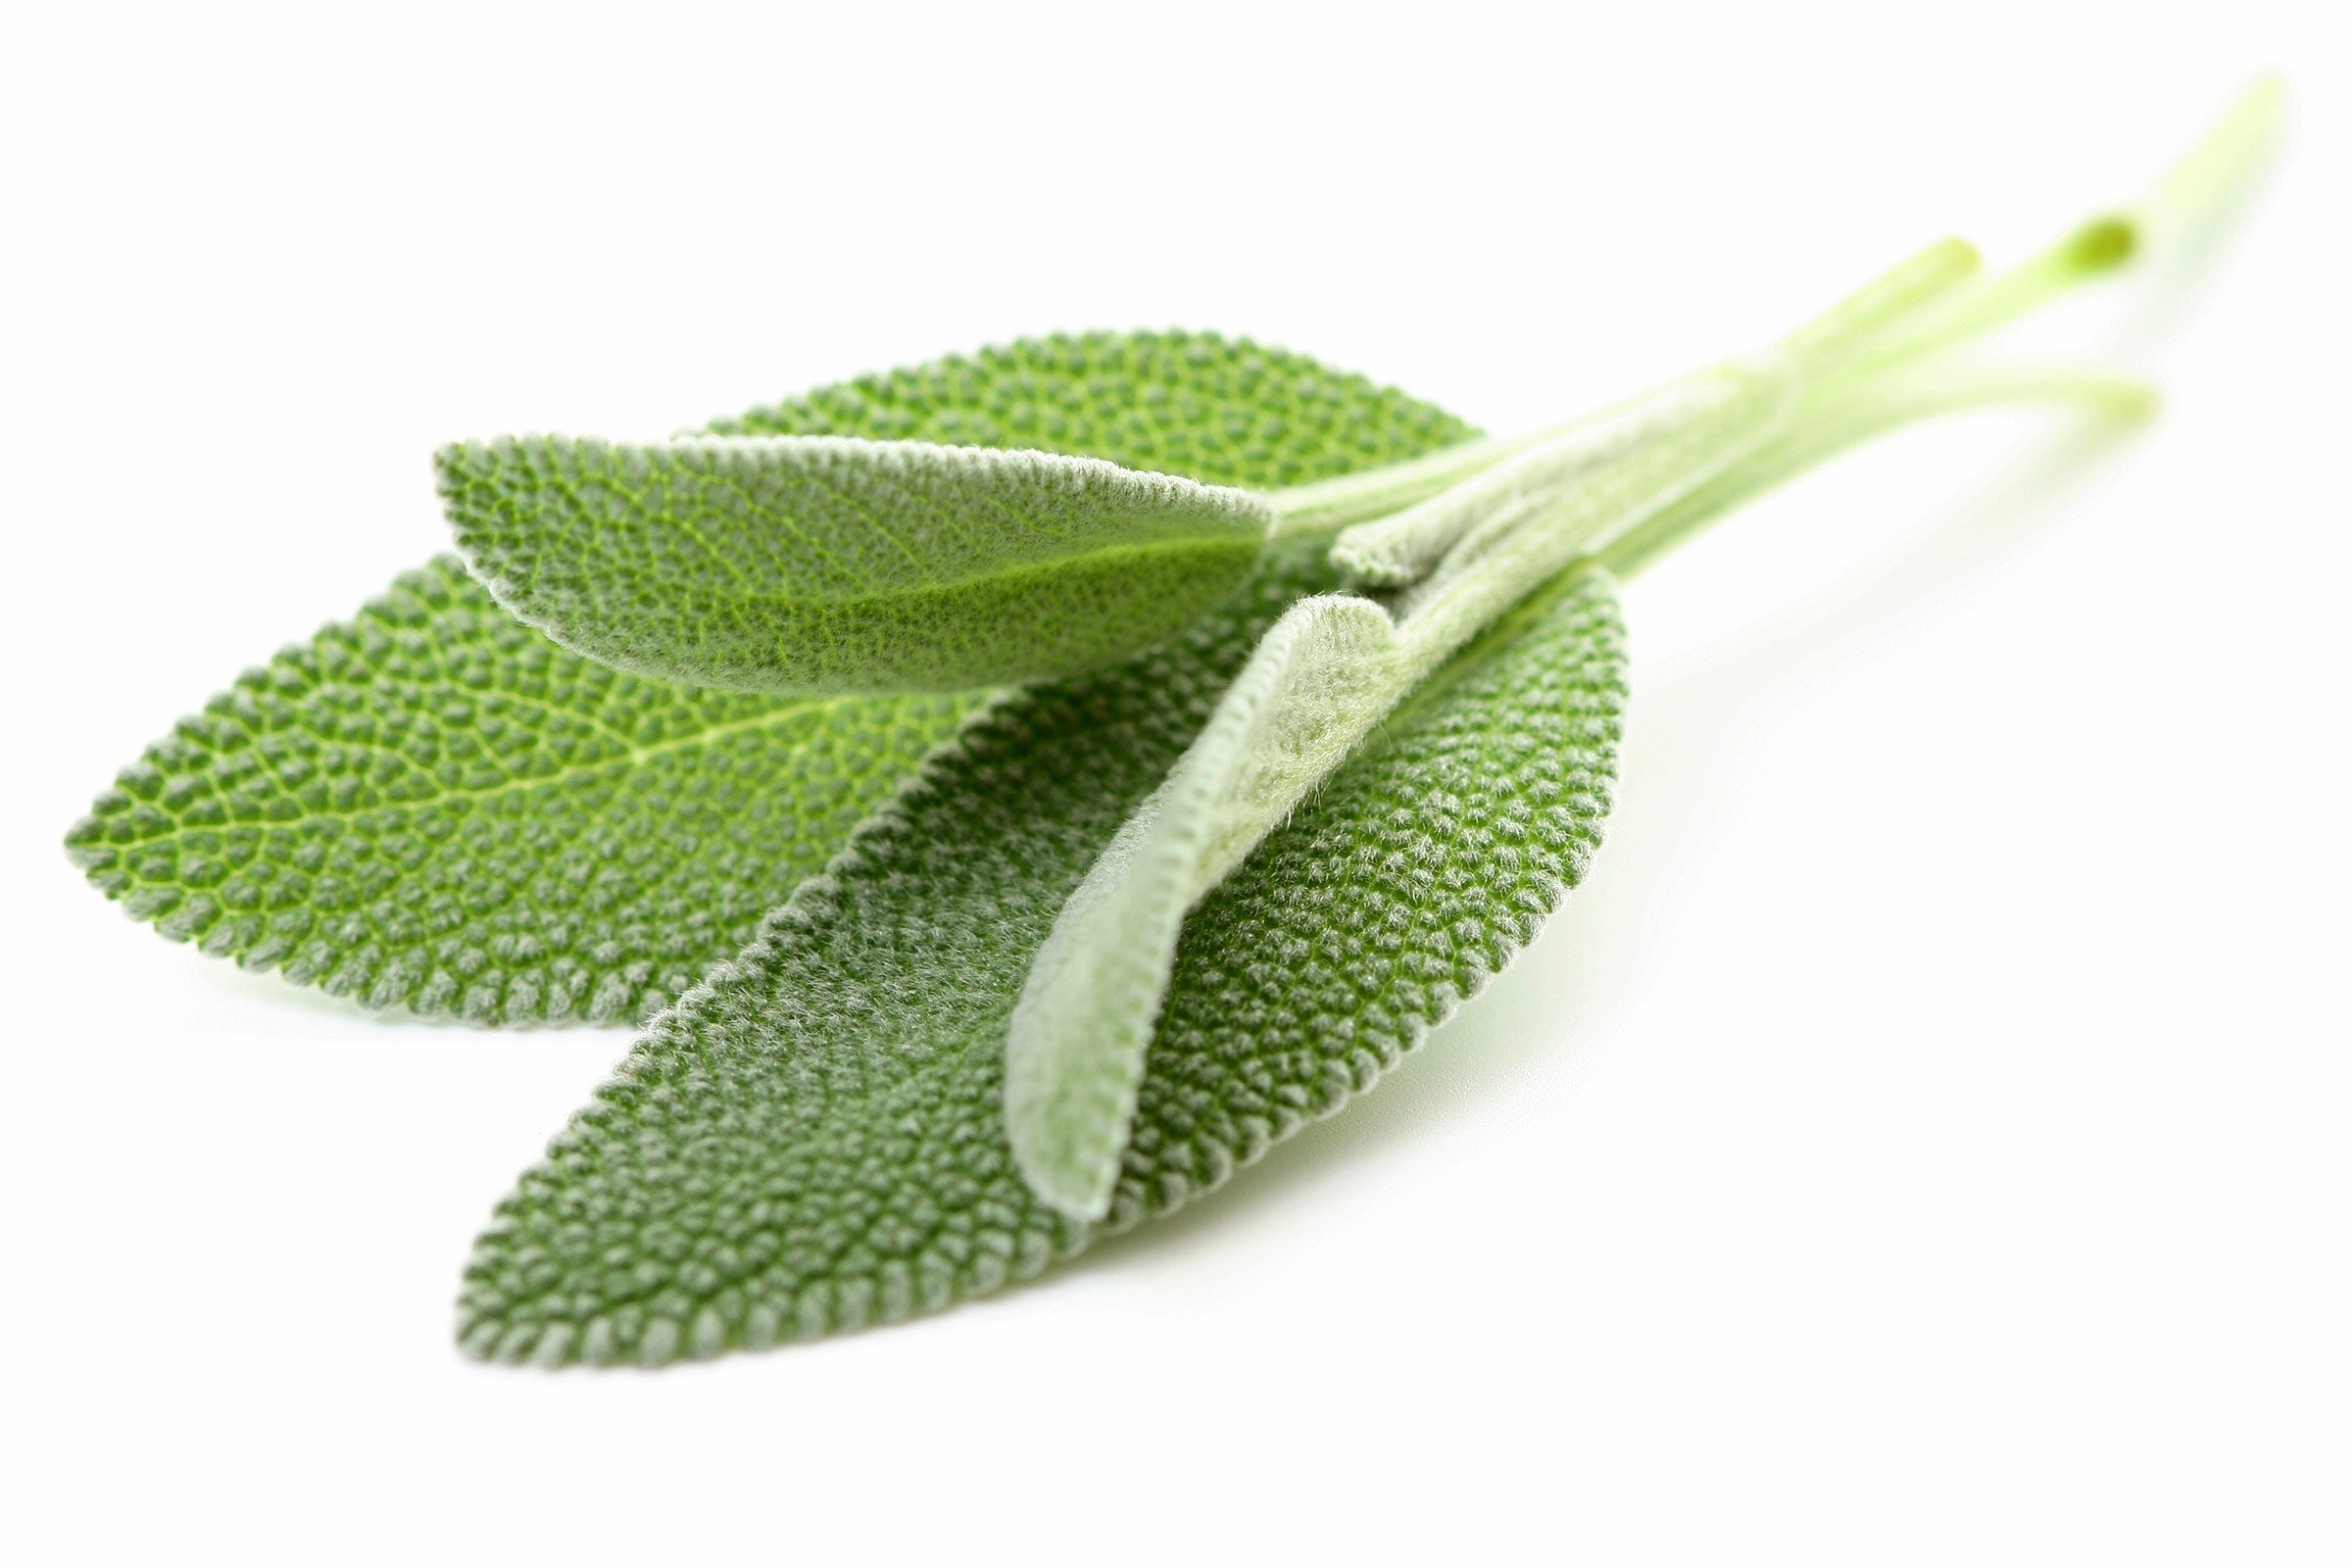 Sore throat remedy: Sage and water